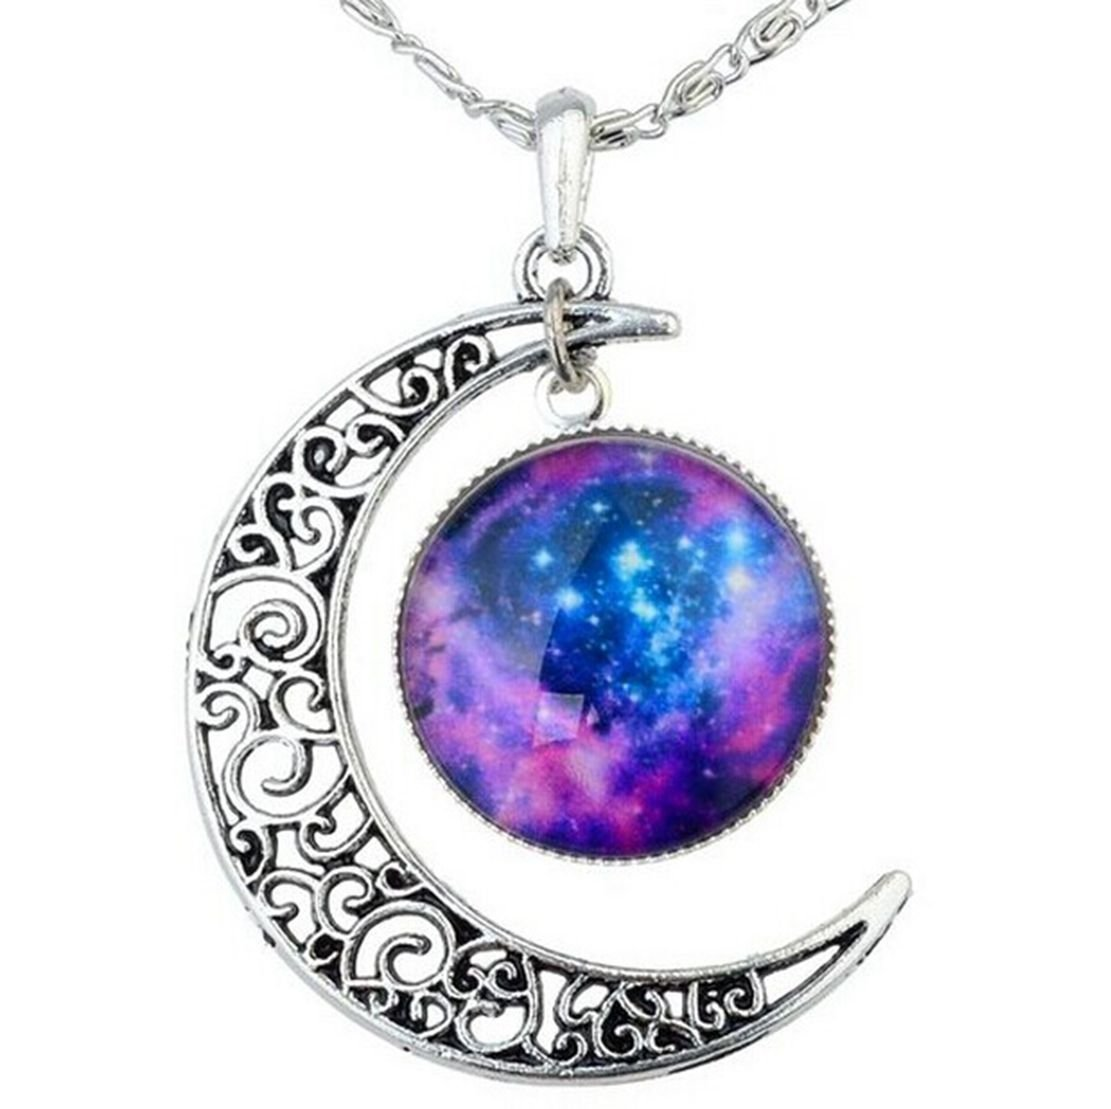 Amazon.com: tricess women's galaxy necklace hollow out crescent with blue purple star galactic cosmic moon charm necklace gift: sports & outdoors